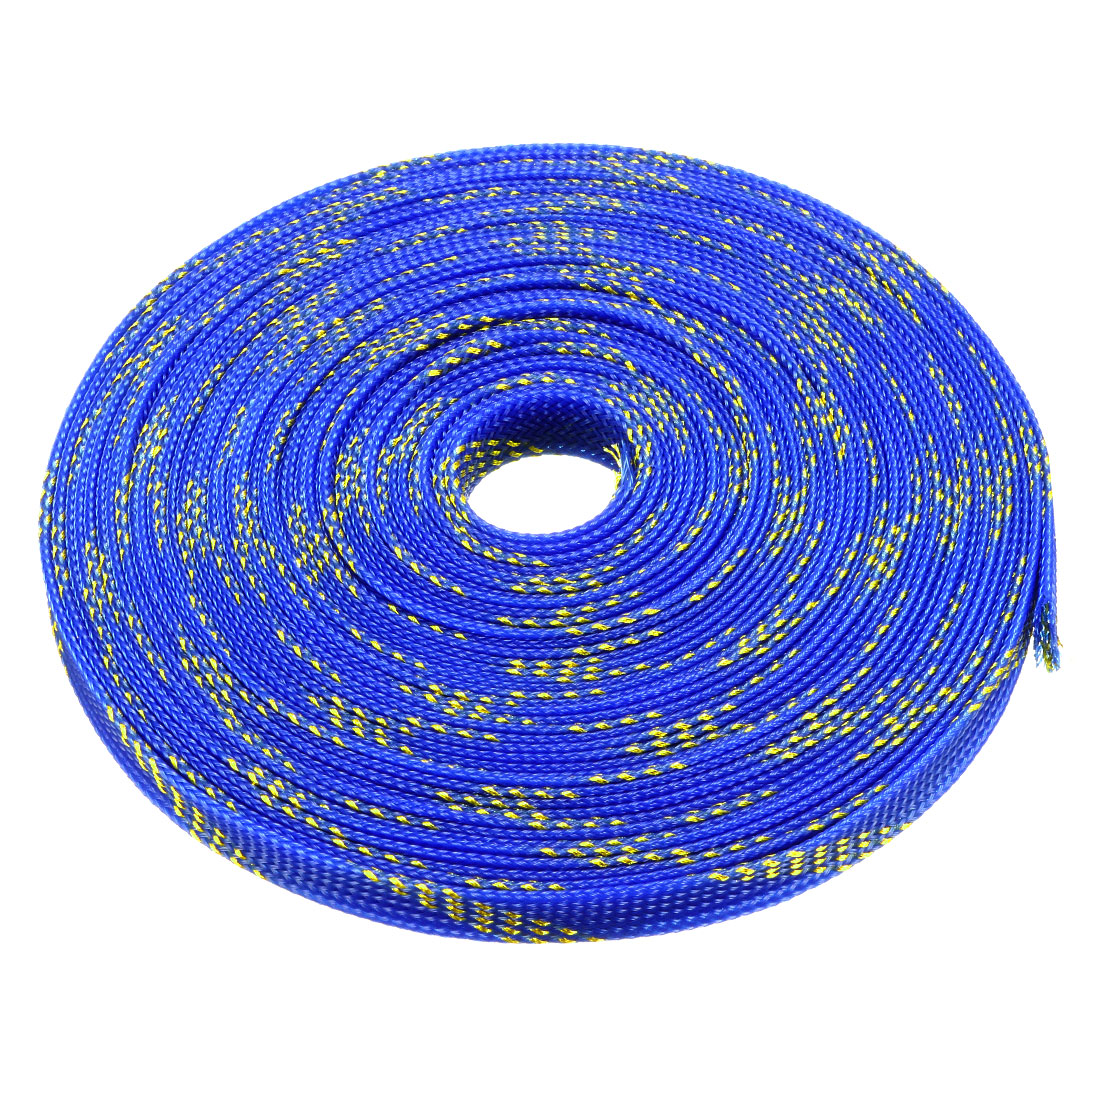 10mm Dia Tight Braided PET Expandable Sleeving Cable Wrap Sheath Golden Blue 32Ft